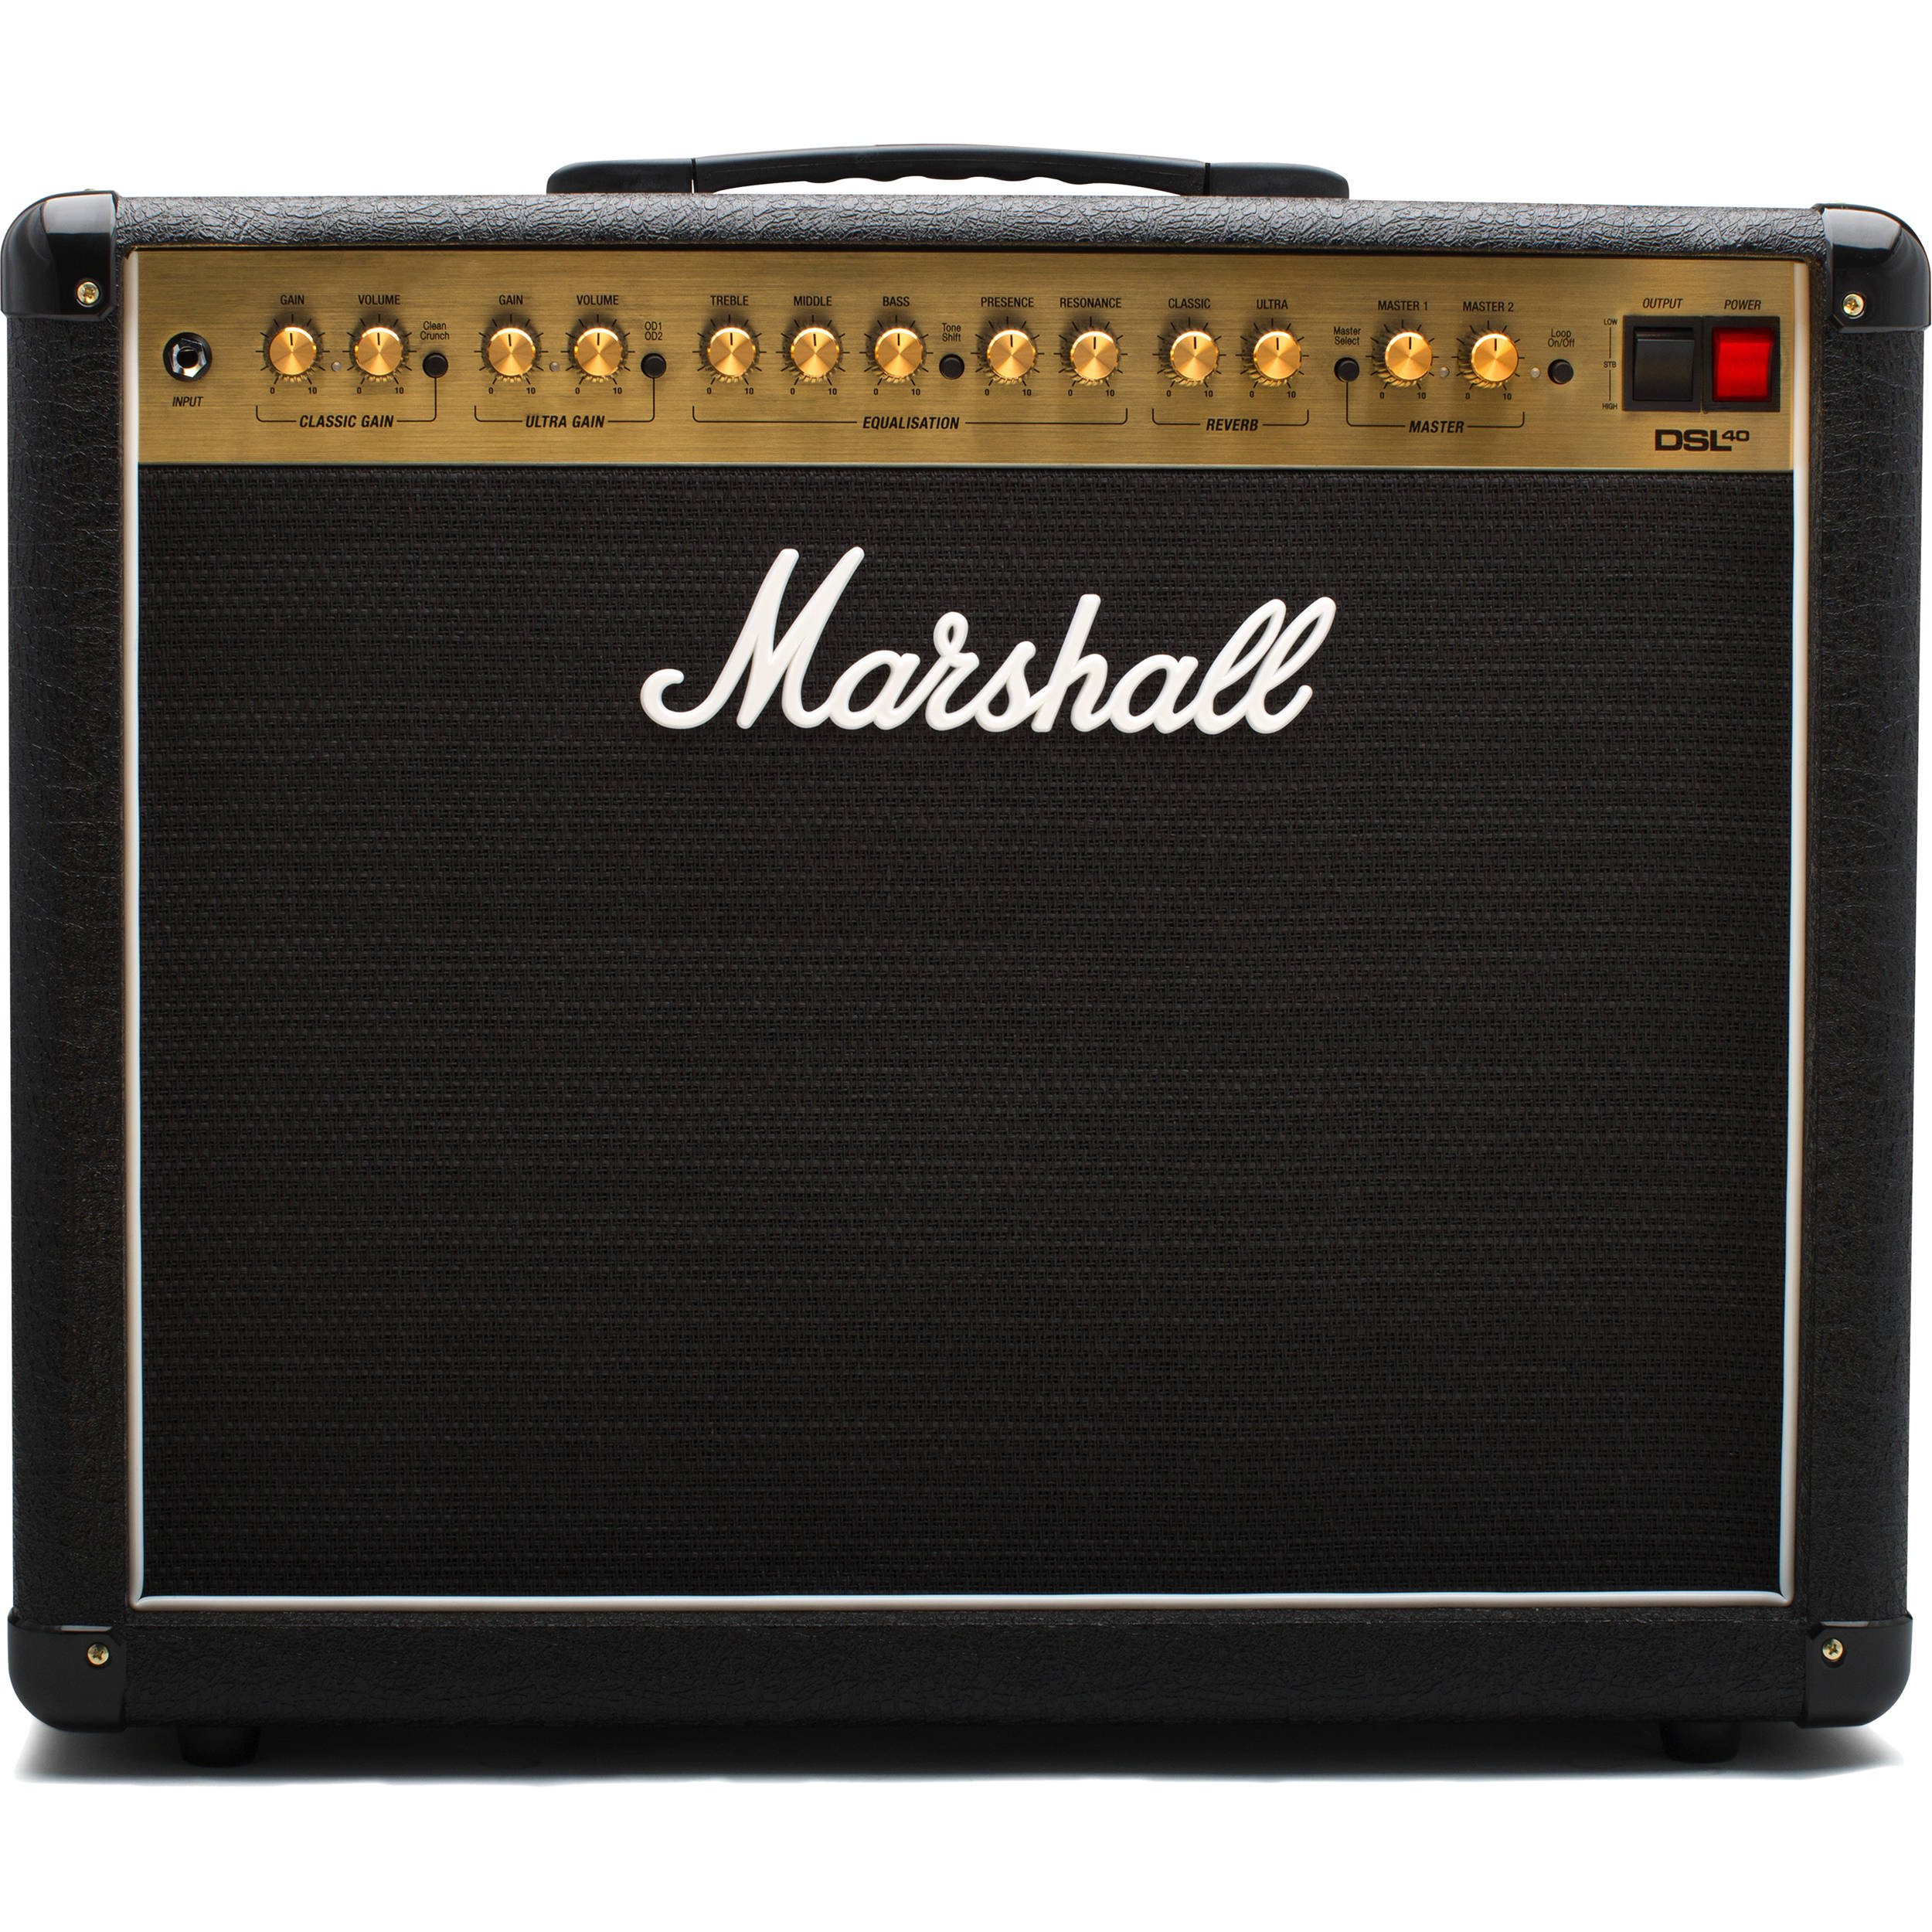 Marshall Amplification Dsl40cr 2 Channel Valve Combo Bh Amp Construction An Independent Amplifier Circuit Board Is Used For With Variable Output 40w